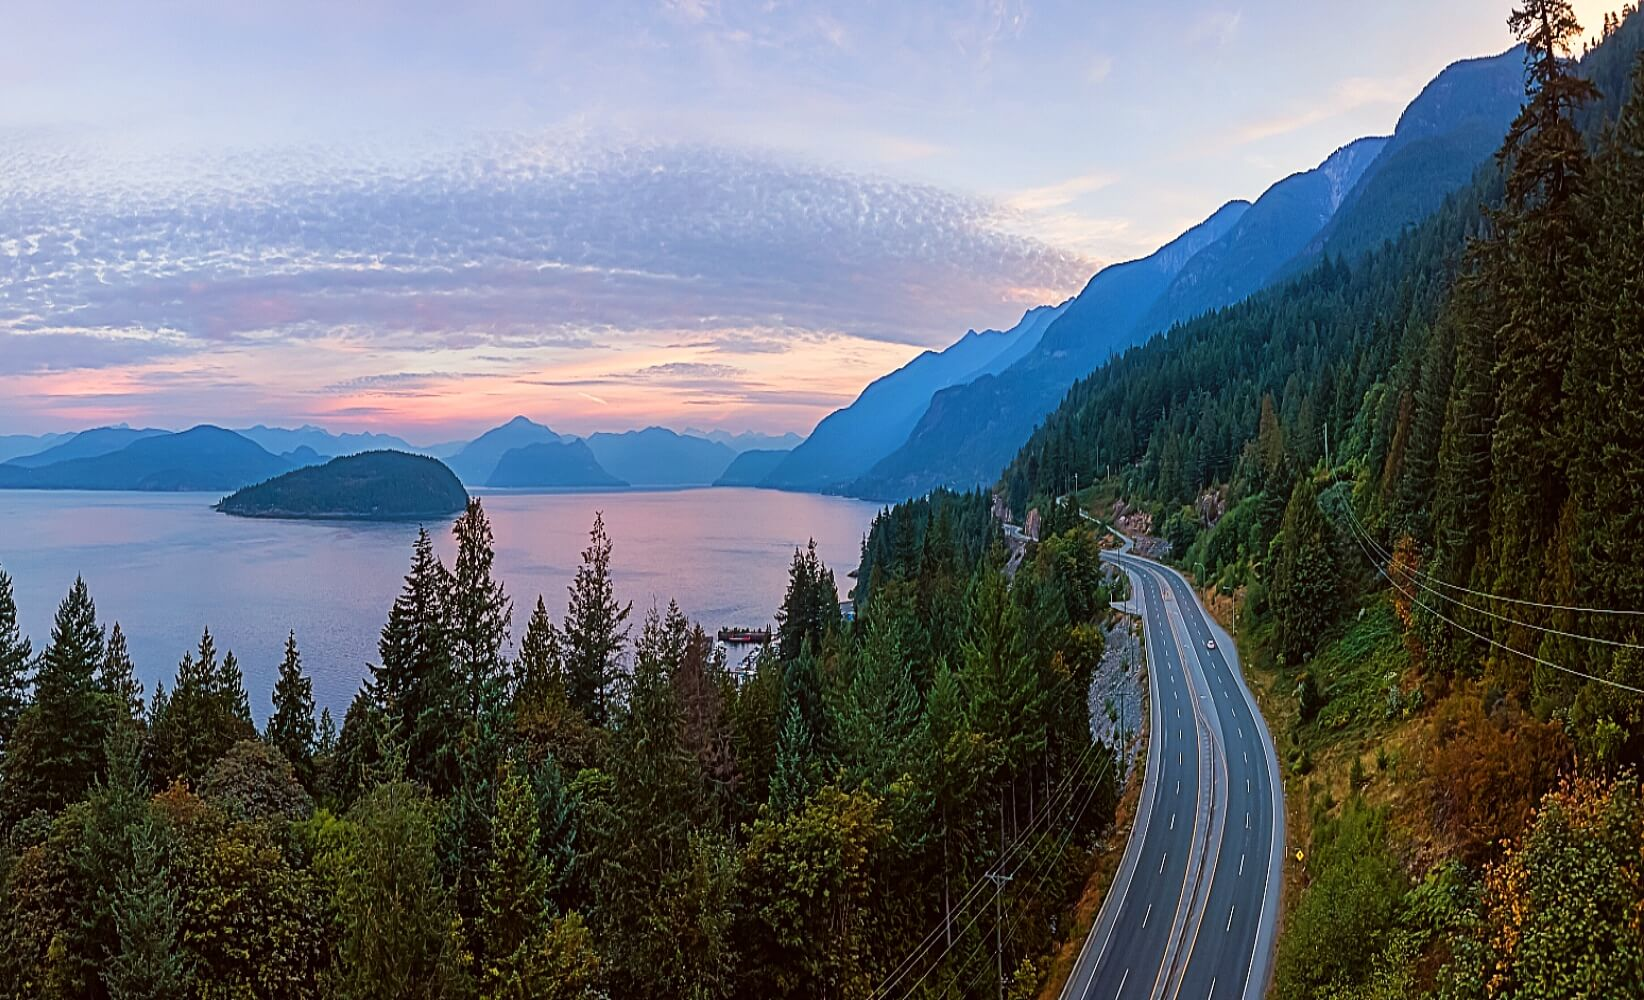 The Sea to Sky Highway passes by Howe Sound